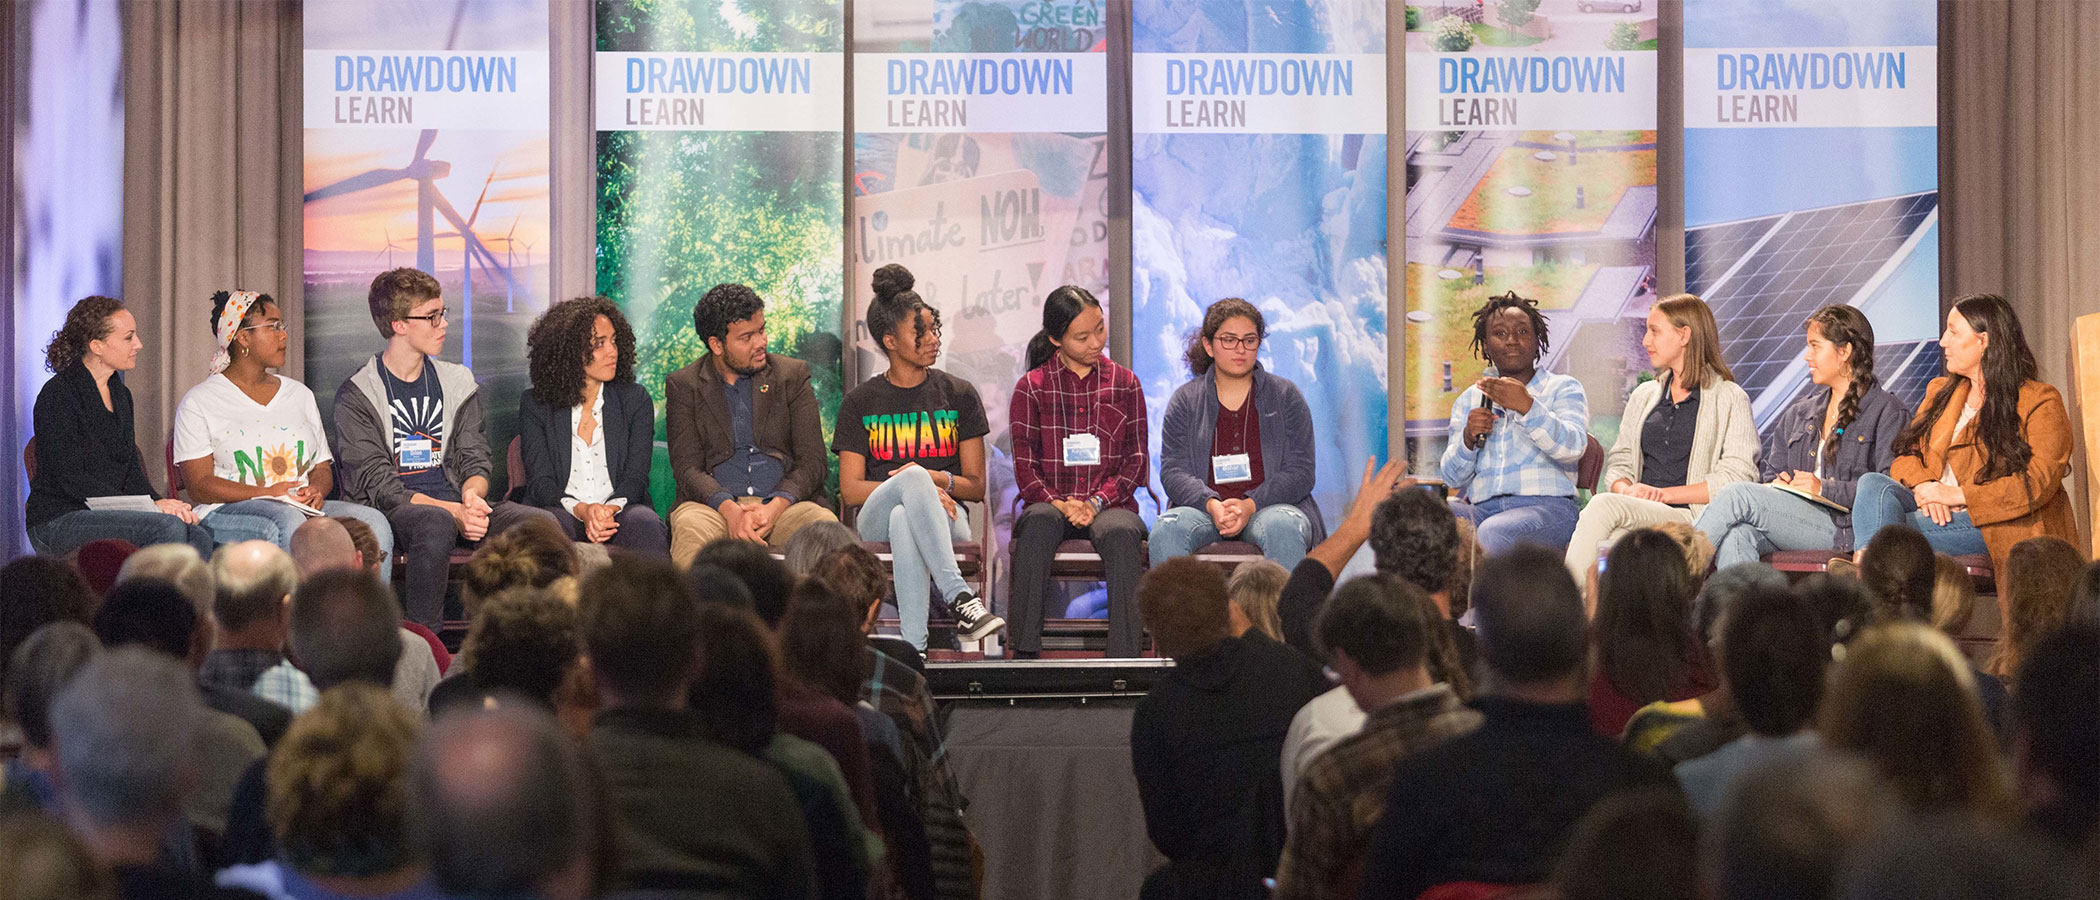 A panel of students on stage discussing climate solutions at the Drawdown Learn conference